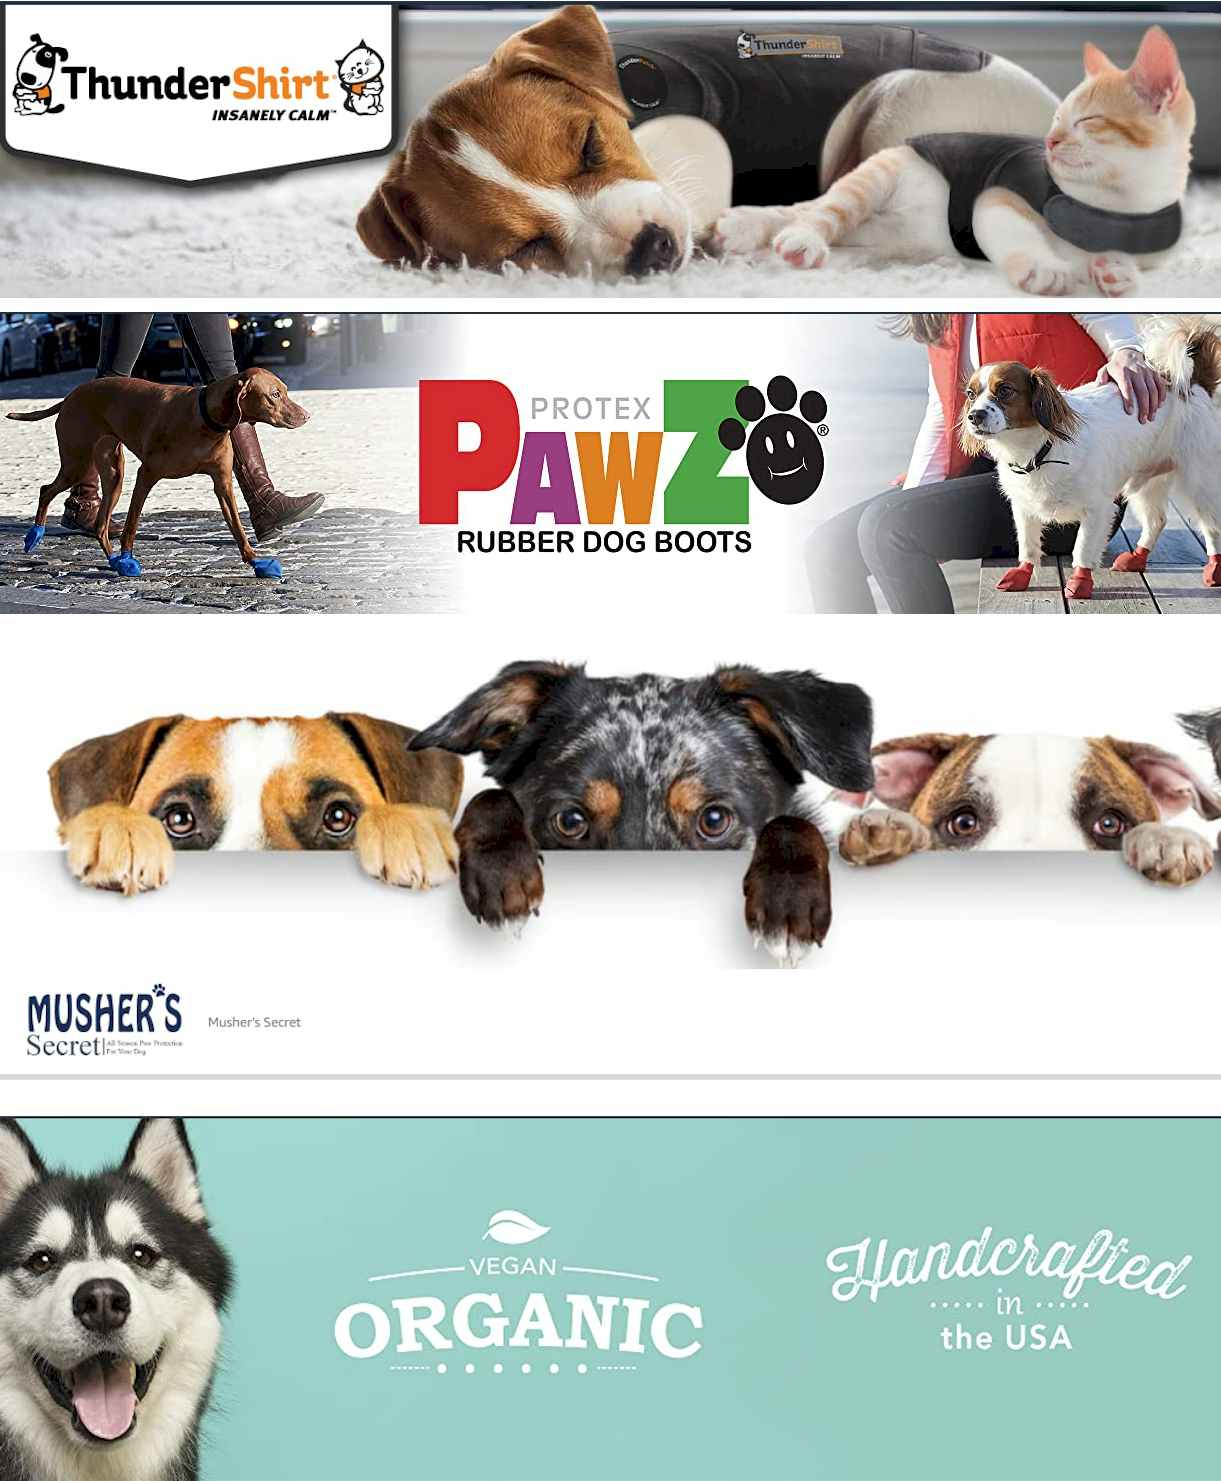 Thundershirt - Pawz - Mushers - Pets Accessories on Amazon -Pet Clothes & Accessories STORES Outward Hound  Store - #Thundershirt - #Vivaglory - #Paws_Aboard - #QUMY - #Protex #PawZ - #Musher's Secret - #Rubie's - #Natural_Dog Company - #RUFFWEAR #pets #dog